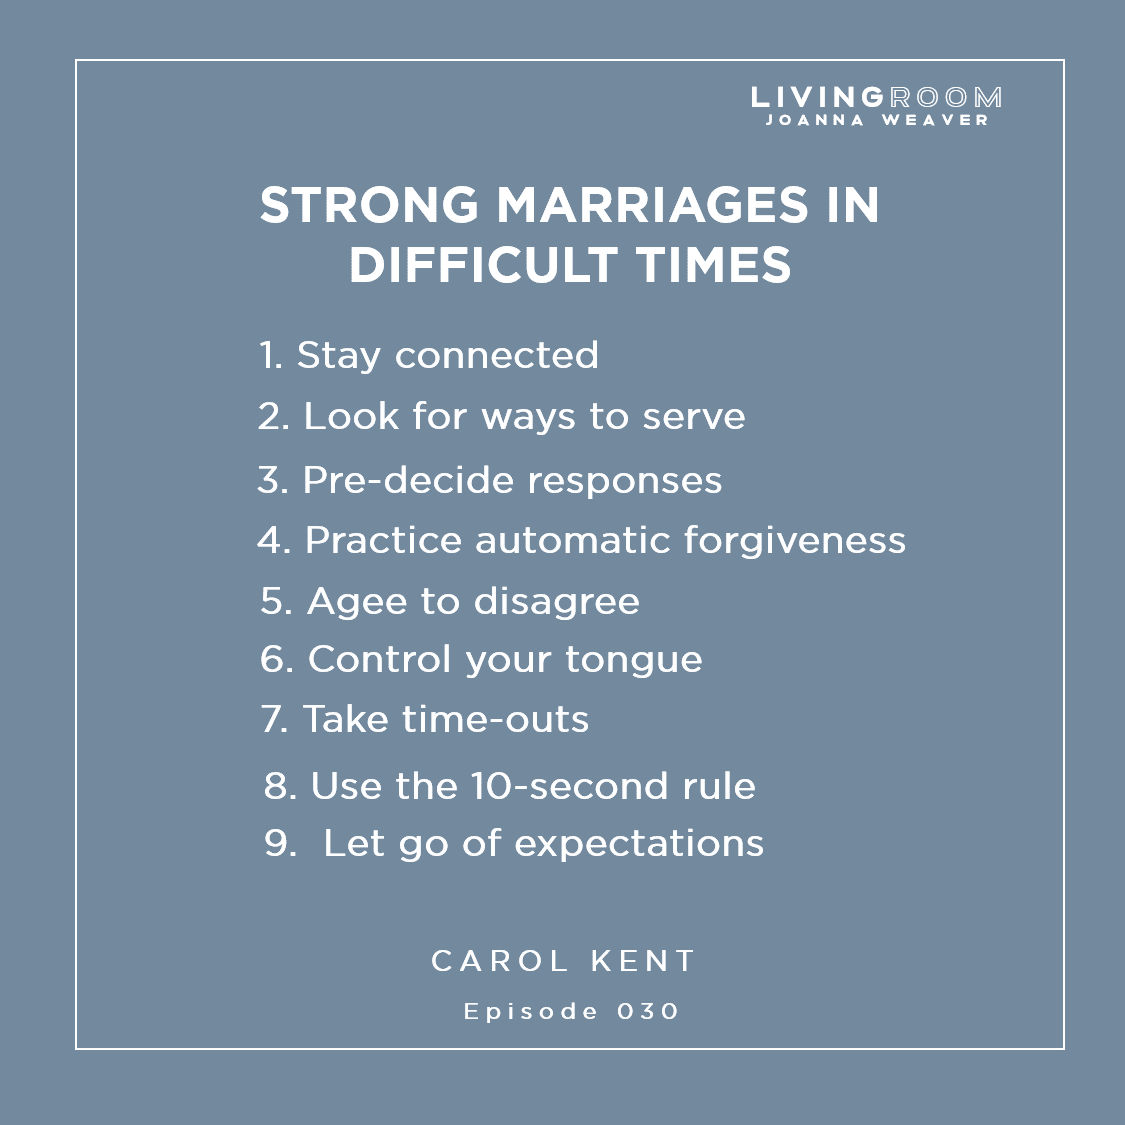 Nine Ways to Strong Marriage in Difficult Times with Carol Kent